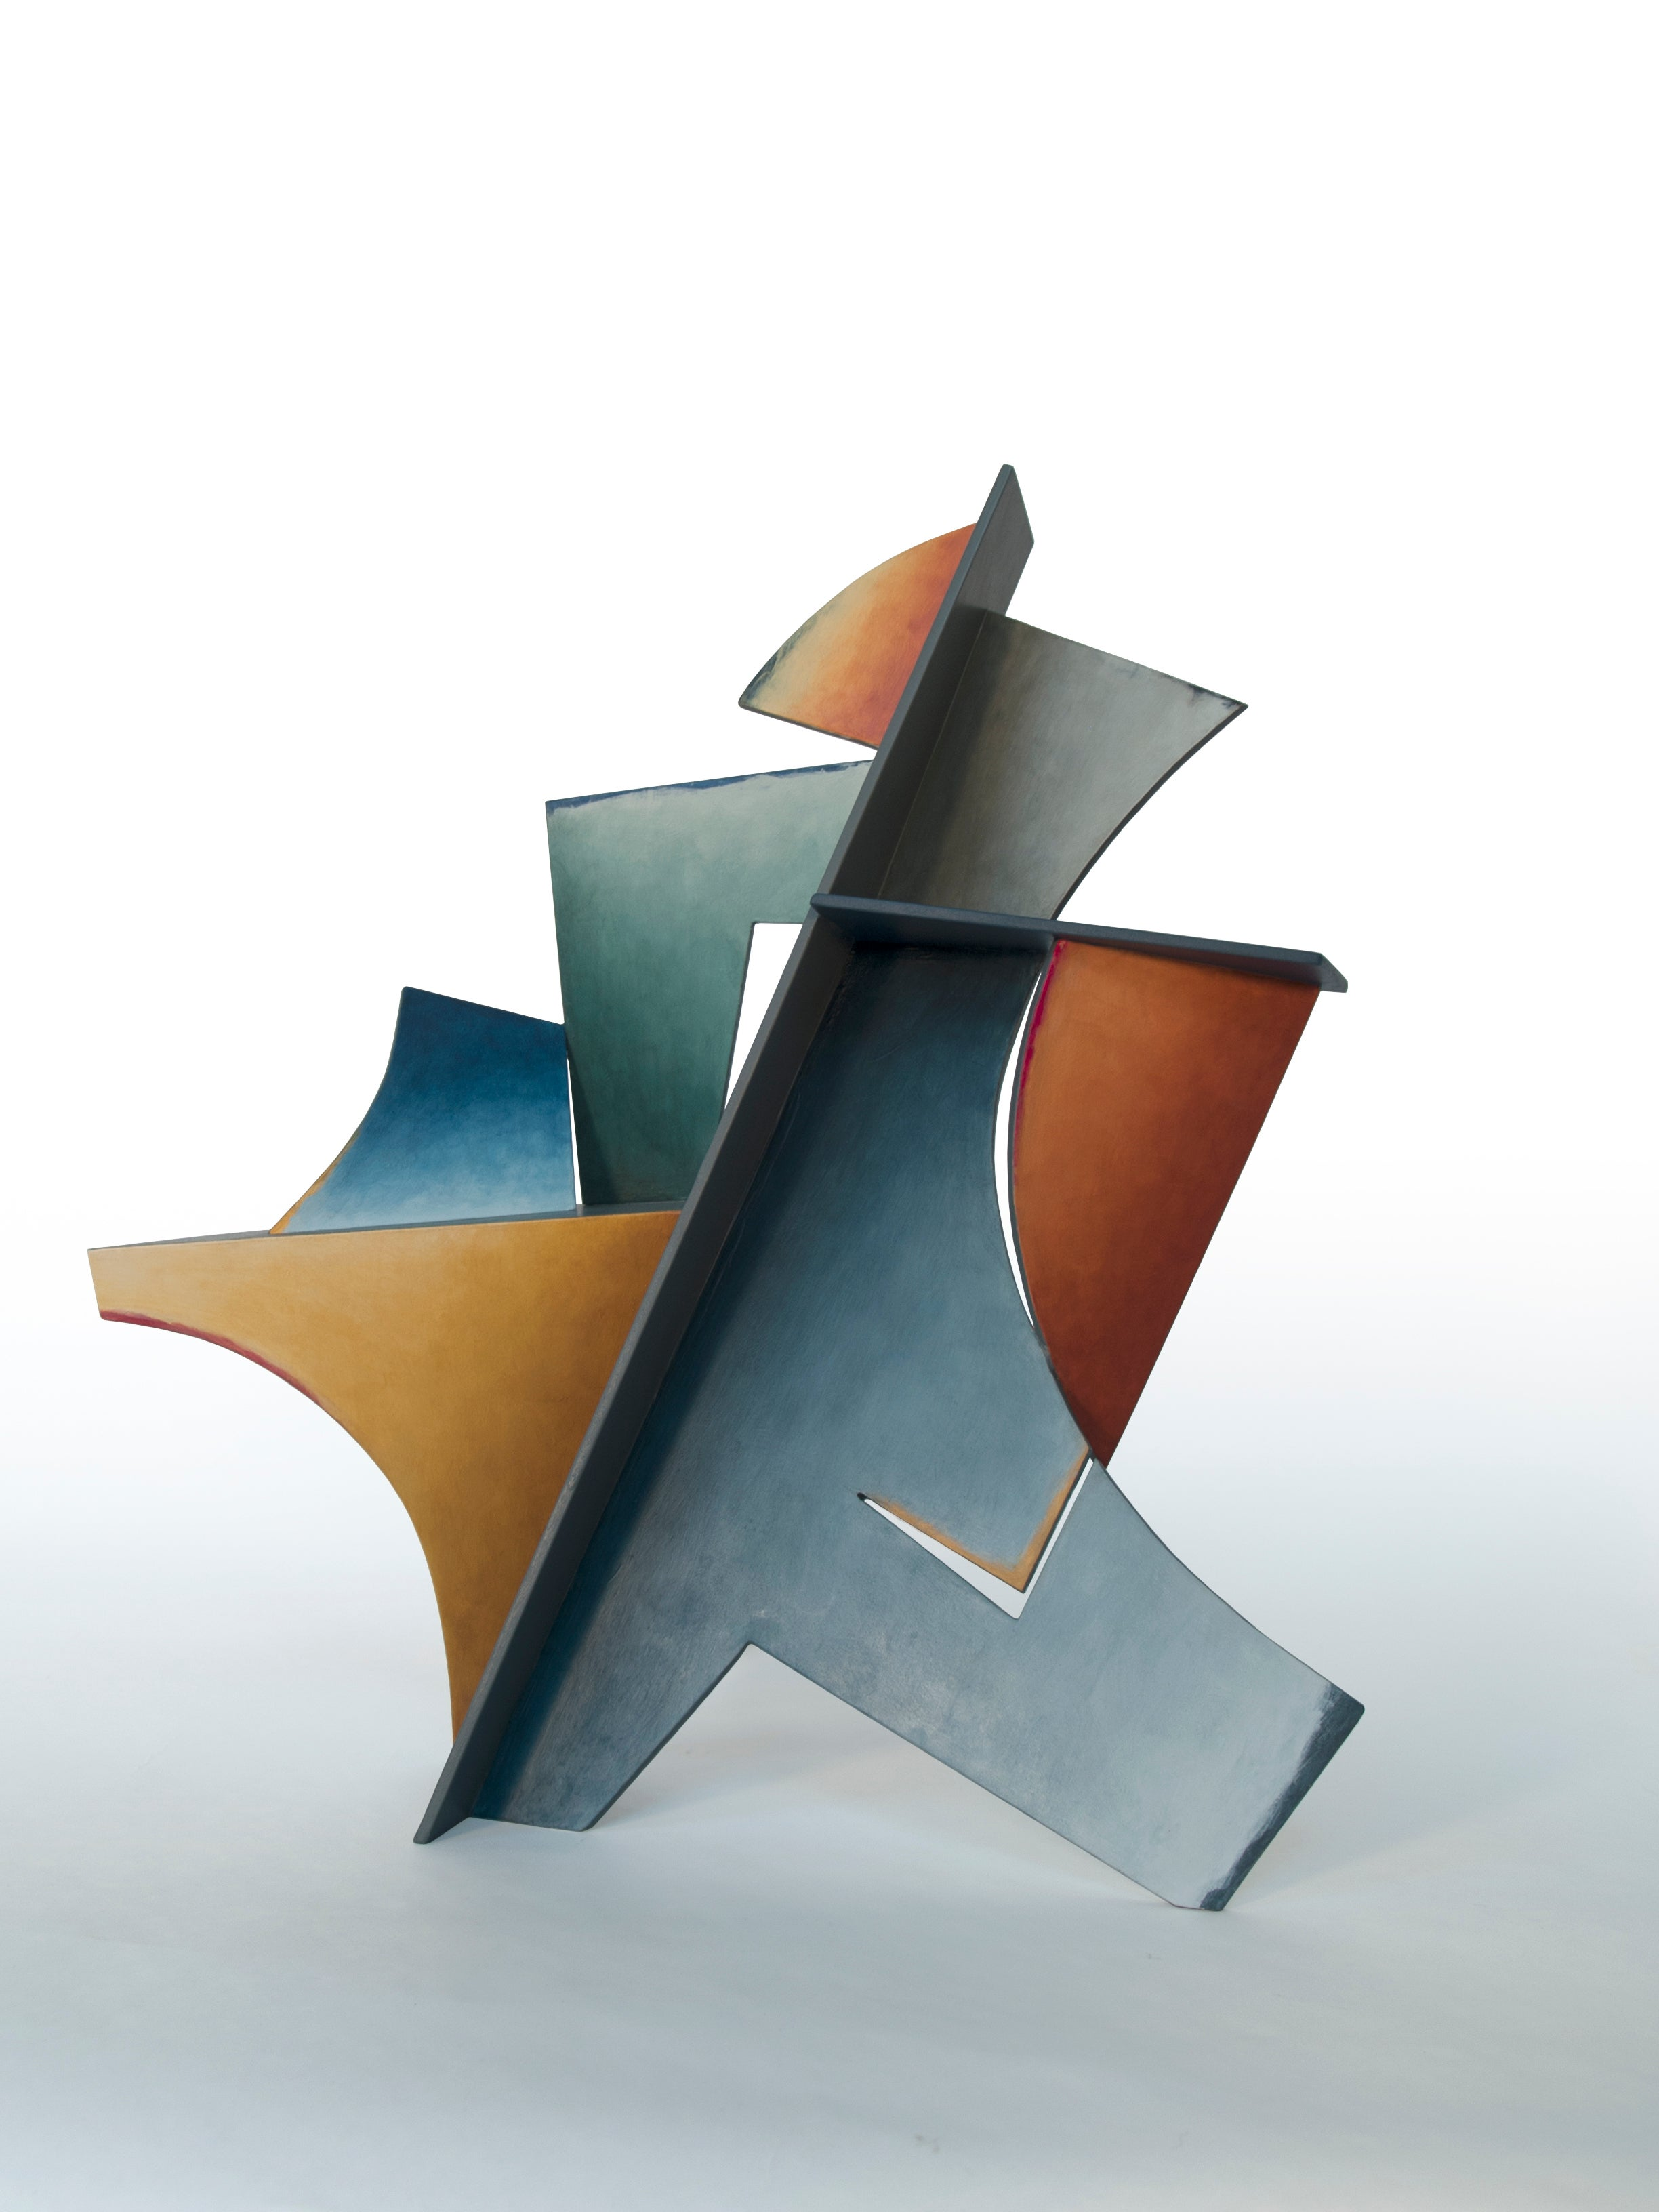 Nightfall - Hand Painted Welded Steel Sculpture Abstract Geometric Form